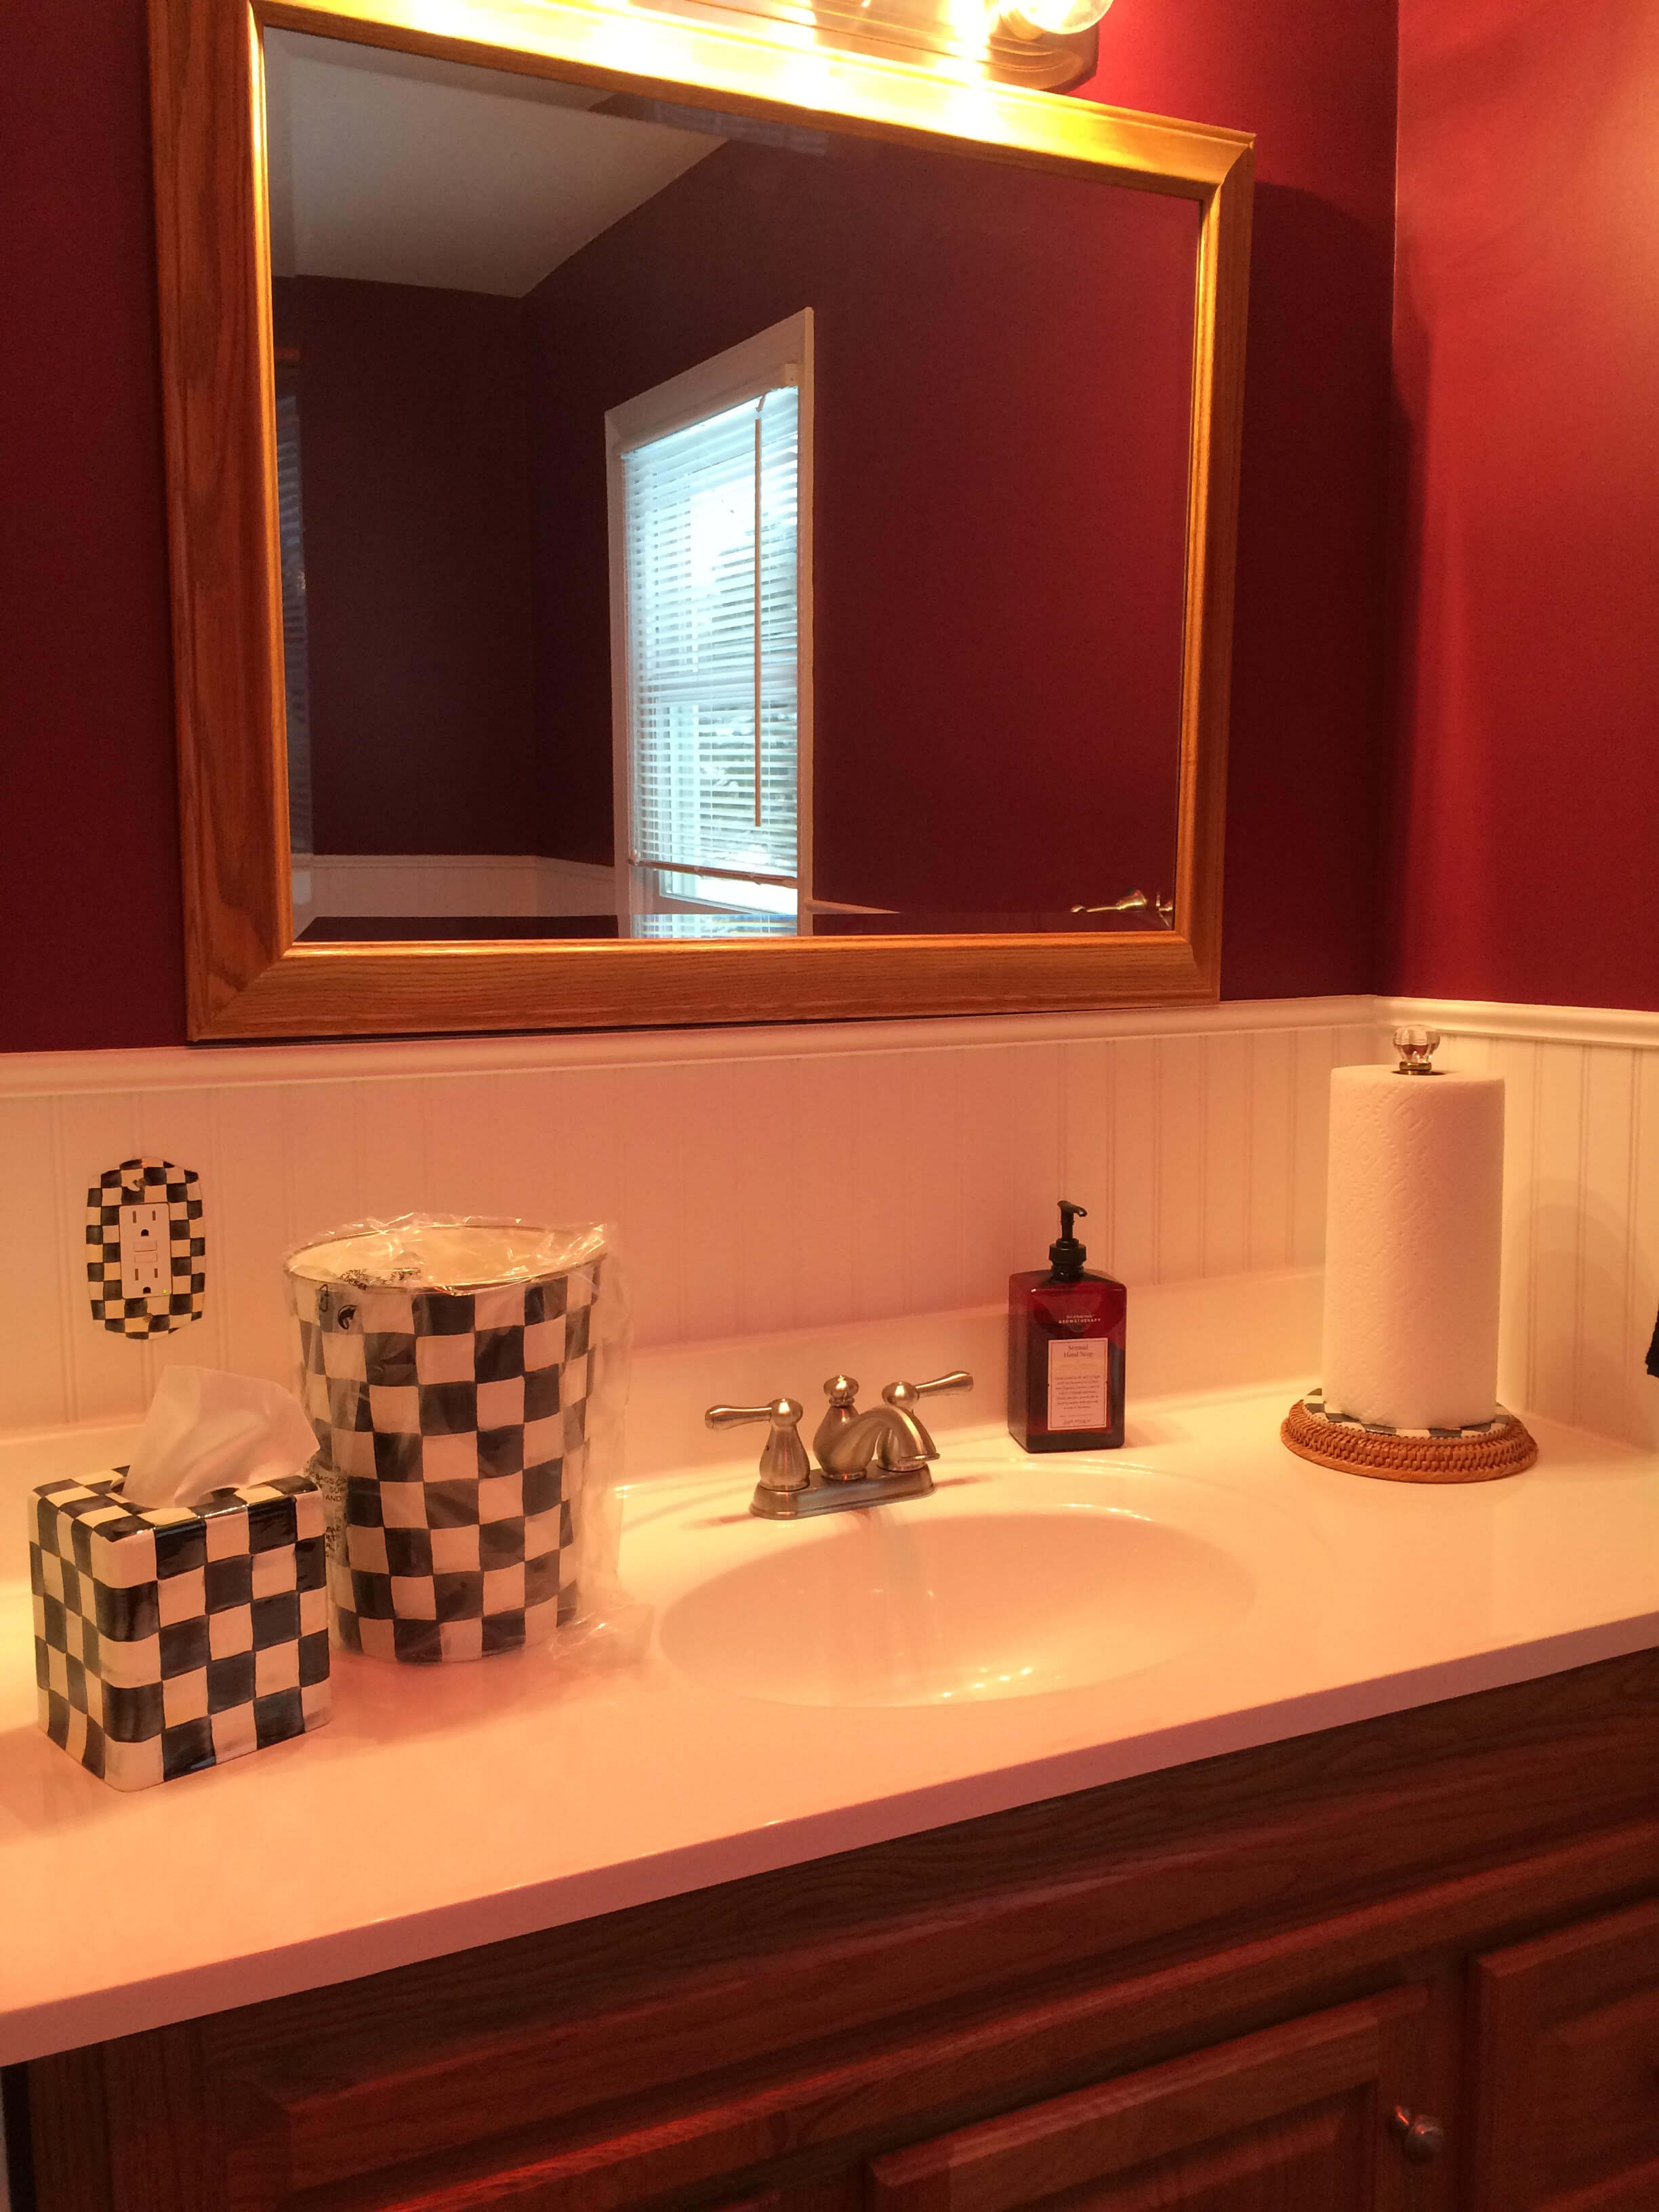 Categories: Bathroom Remodeling, Handicapped Accessible